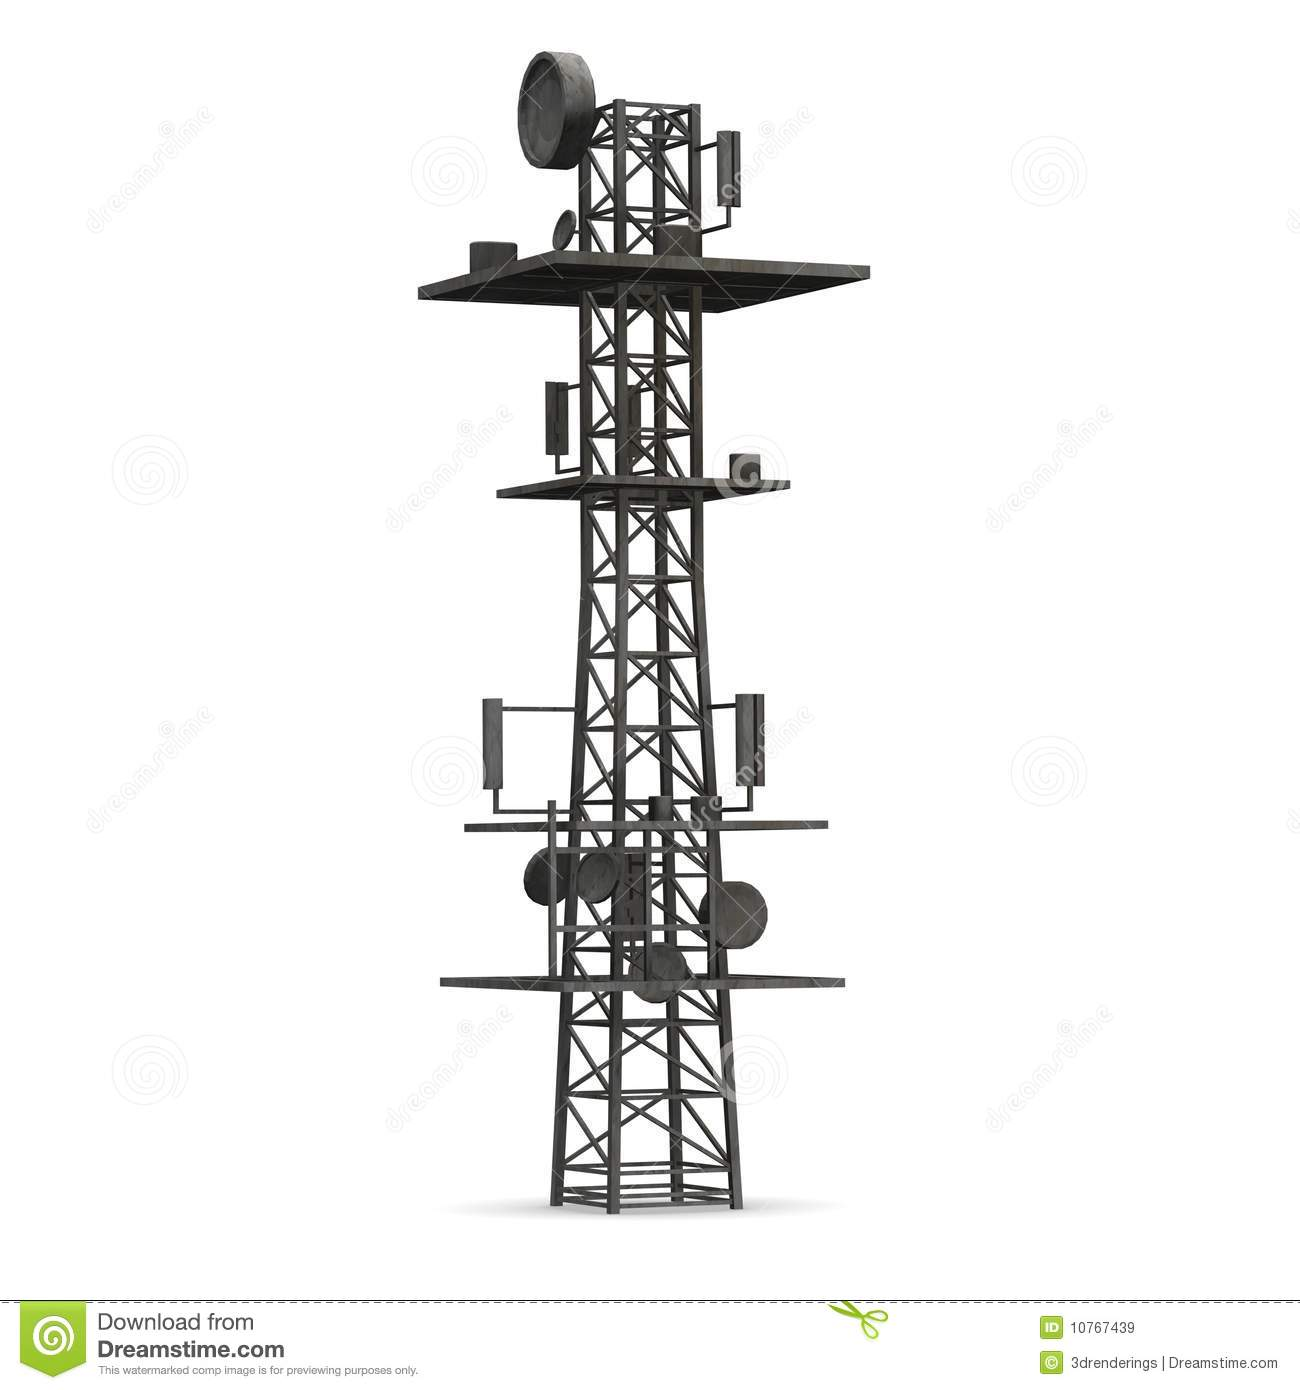 Cell site clipart clip art library library Cell site clipart - ClipartFest clip art library library